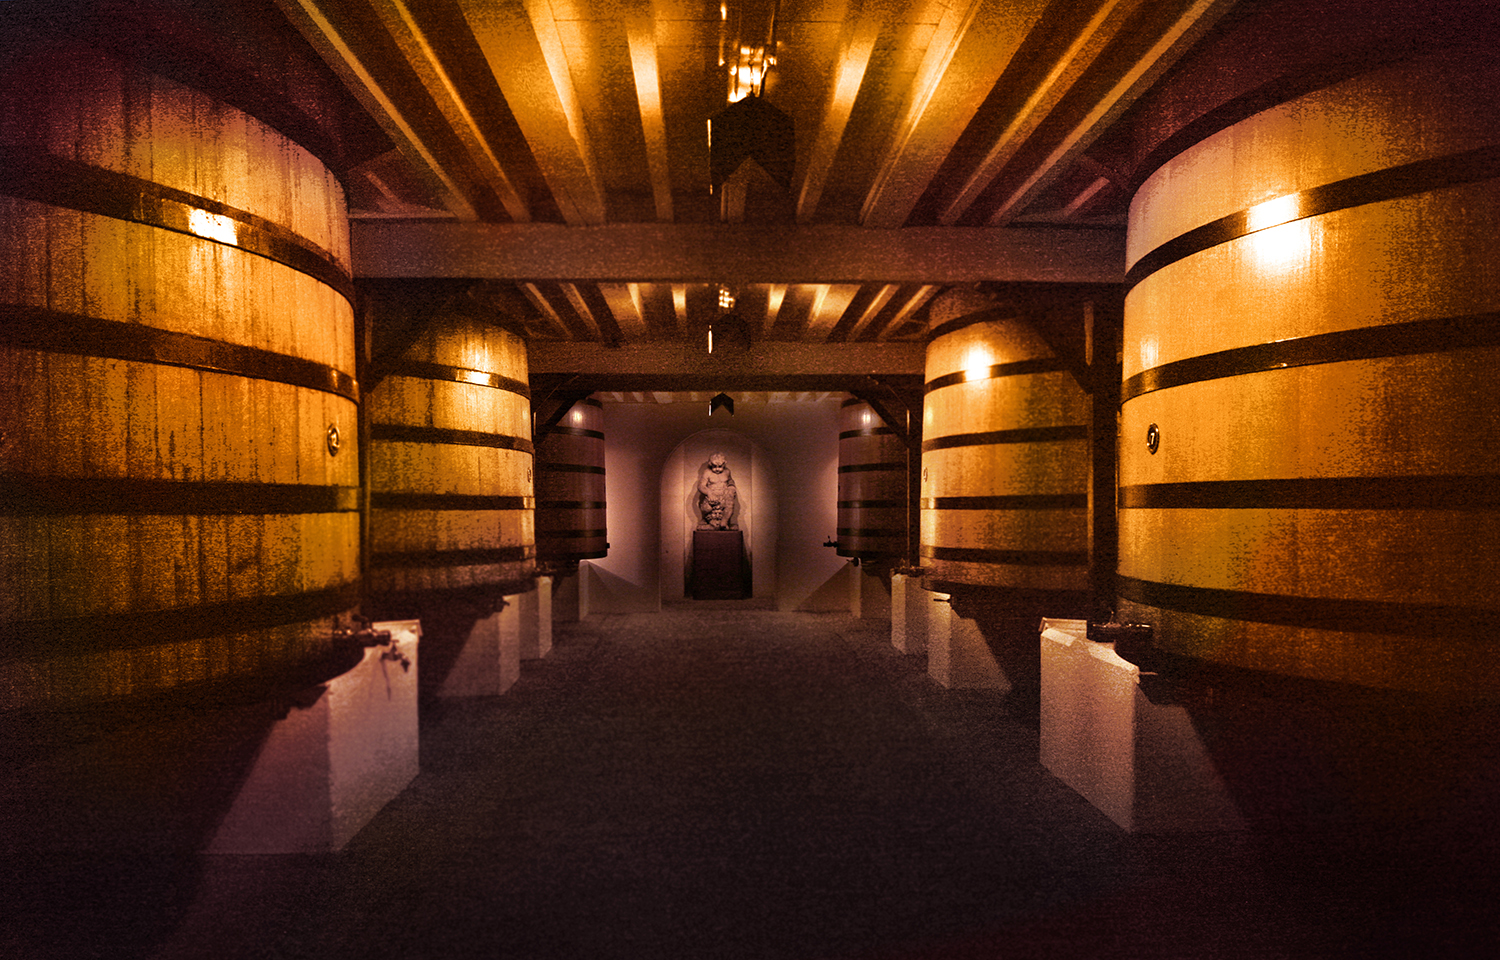 The Barrel Room at Mouton-Rothschild